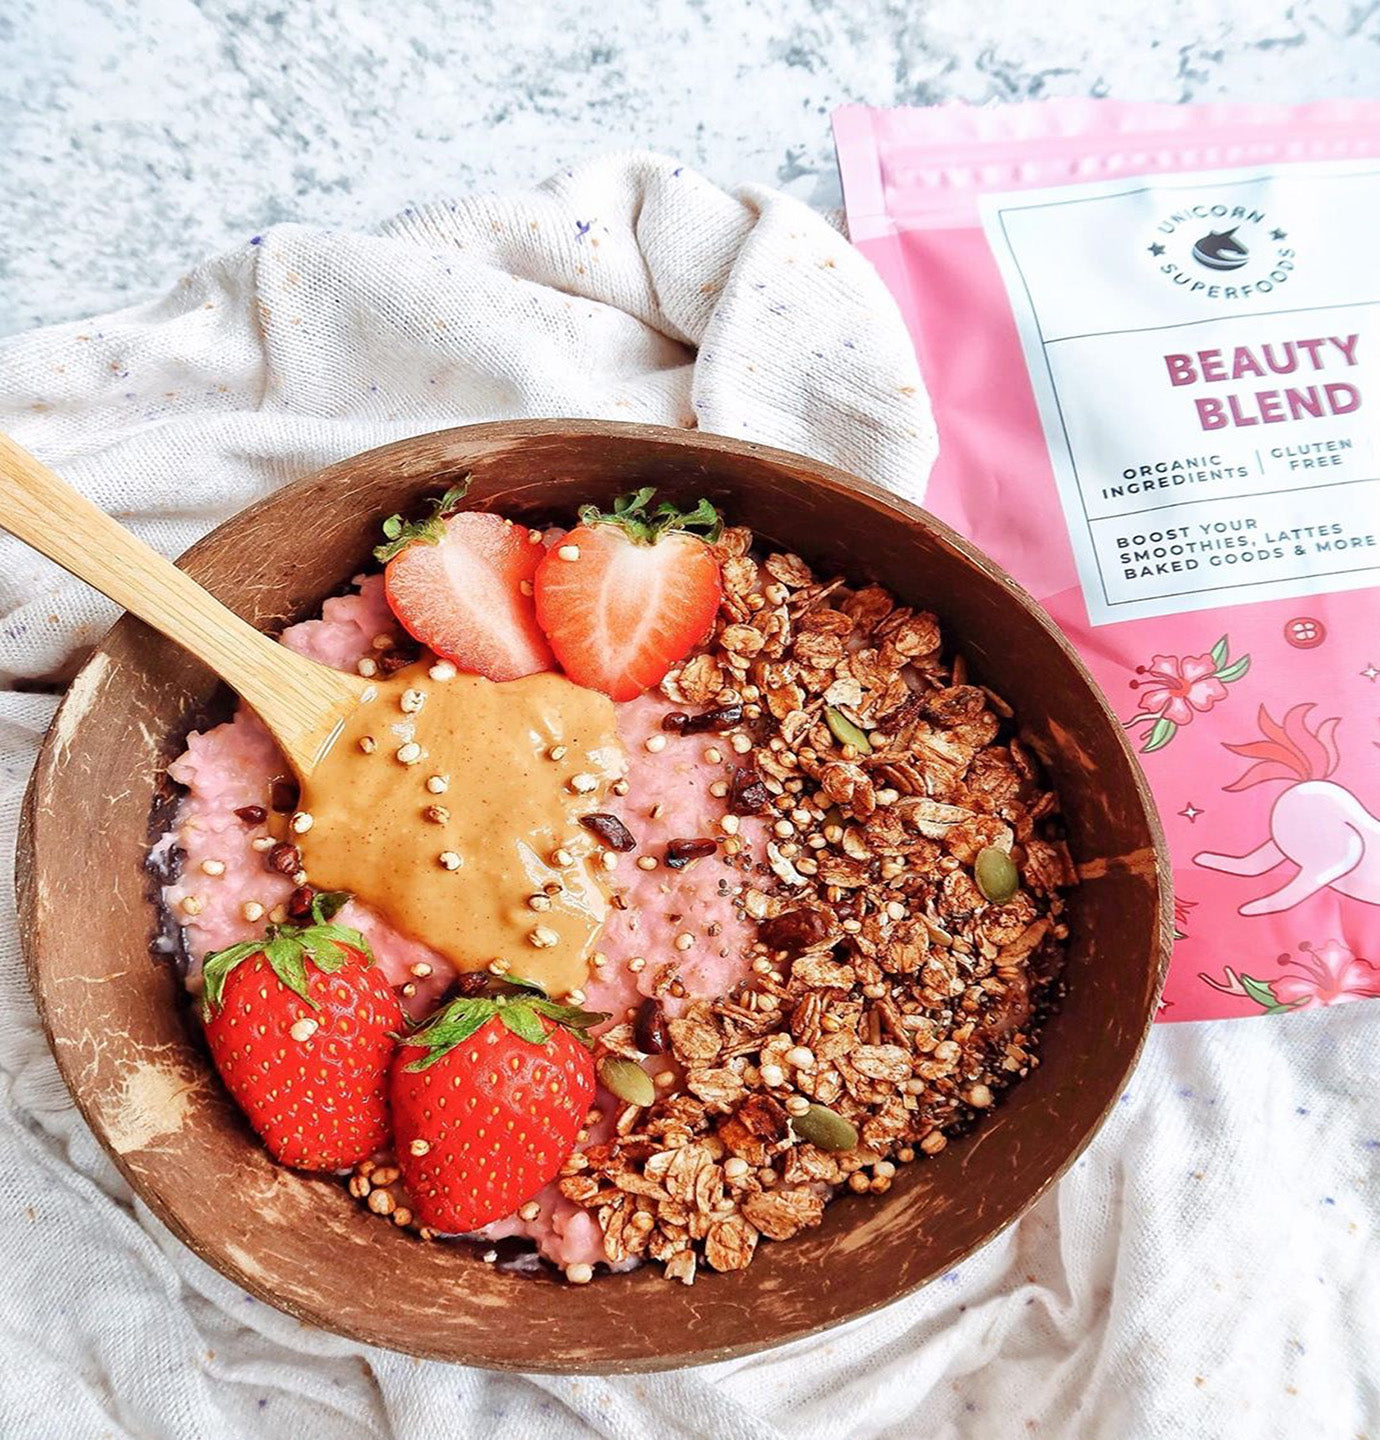 beauty blend oatmeal bowl